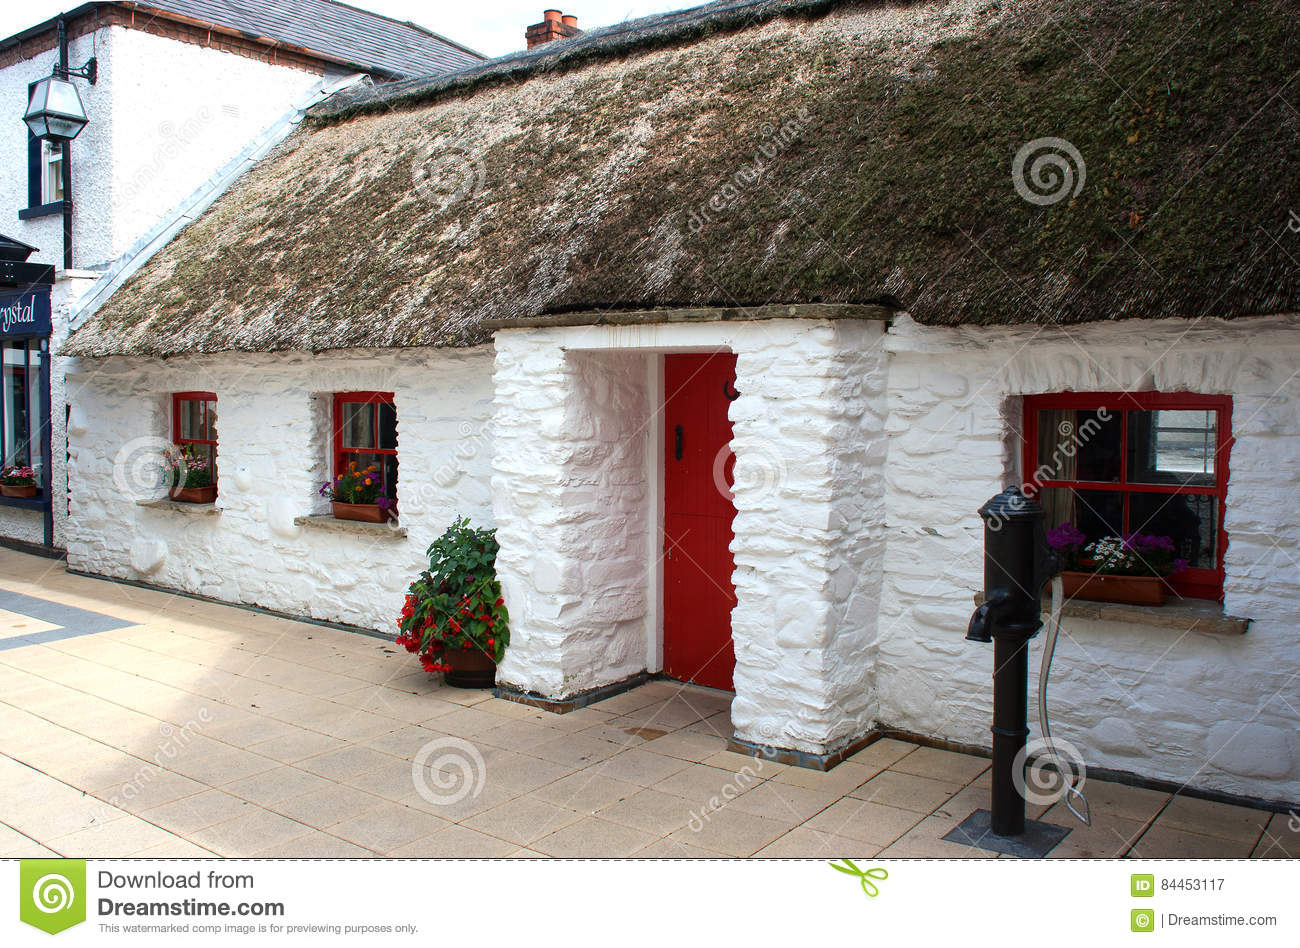 Download An Excellent Example Of A Preserved Irish Cottage With Superb Thatched Roof In Londonderry Ireland Stock Image - Image of stone, history: 84453117